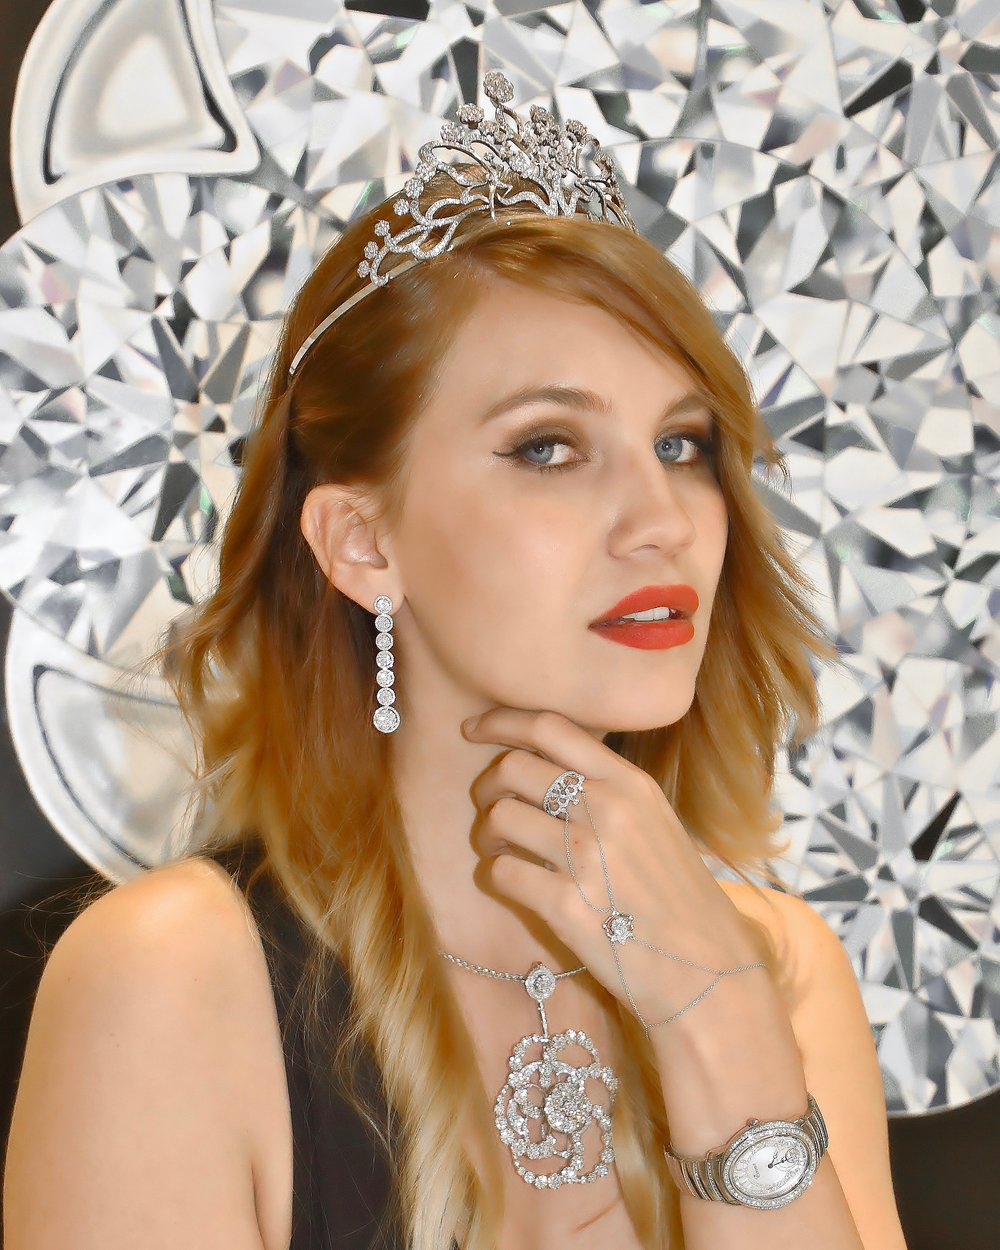 Miss Switzerland, Kerstin Cook radiates in the 'Inner Brilliance' spinning diamonds jewelry from 'Coronet By Reena Ahluwalia'.  VIEW THE COLLECTION .   Image credit: Abdou HILALI | Baselworld